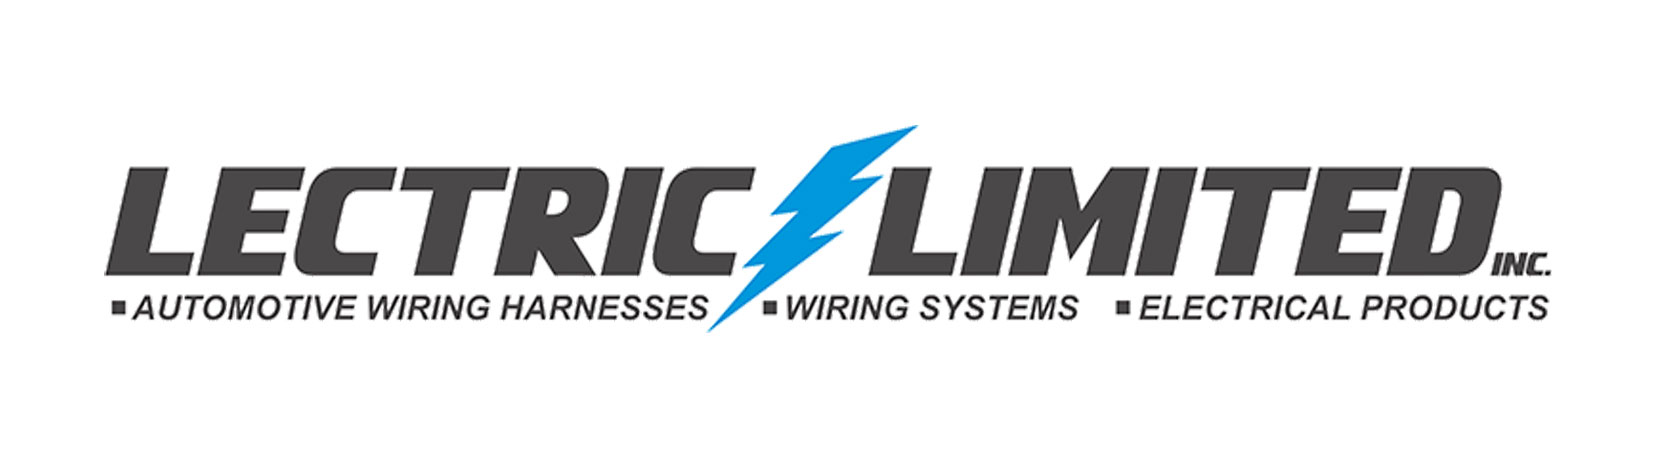 Lectric Limited, Inc. logo